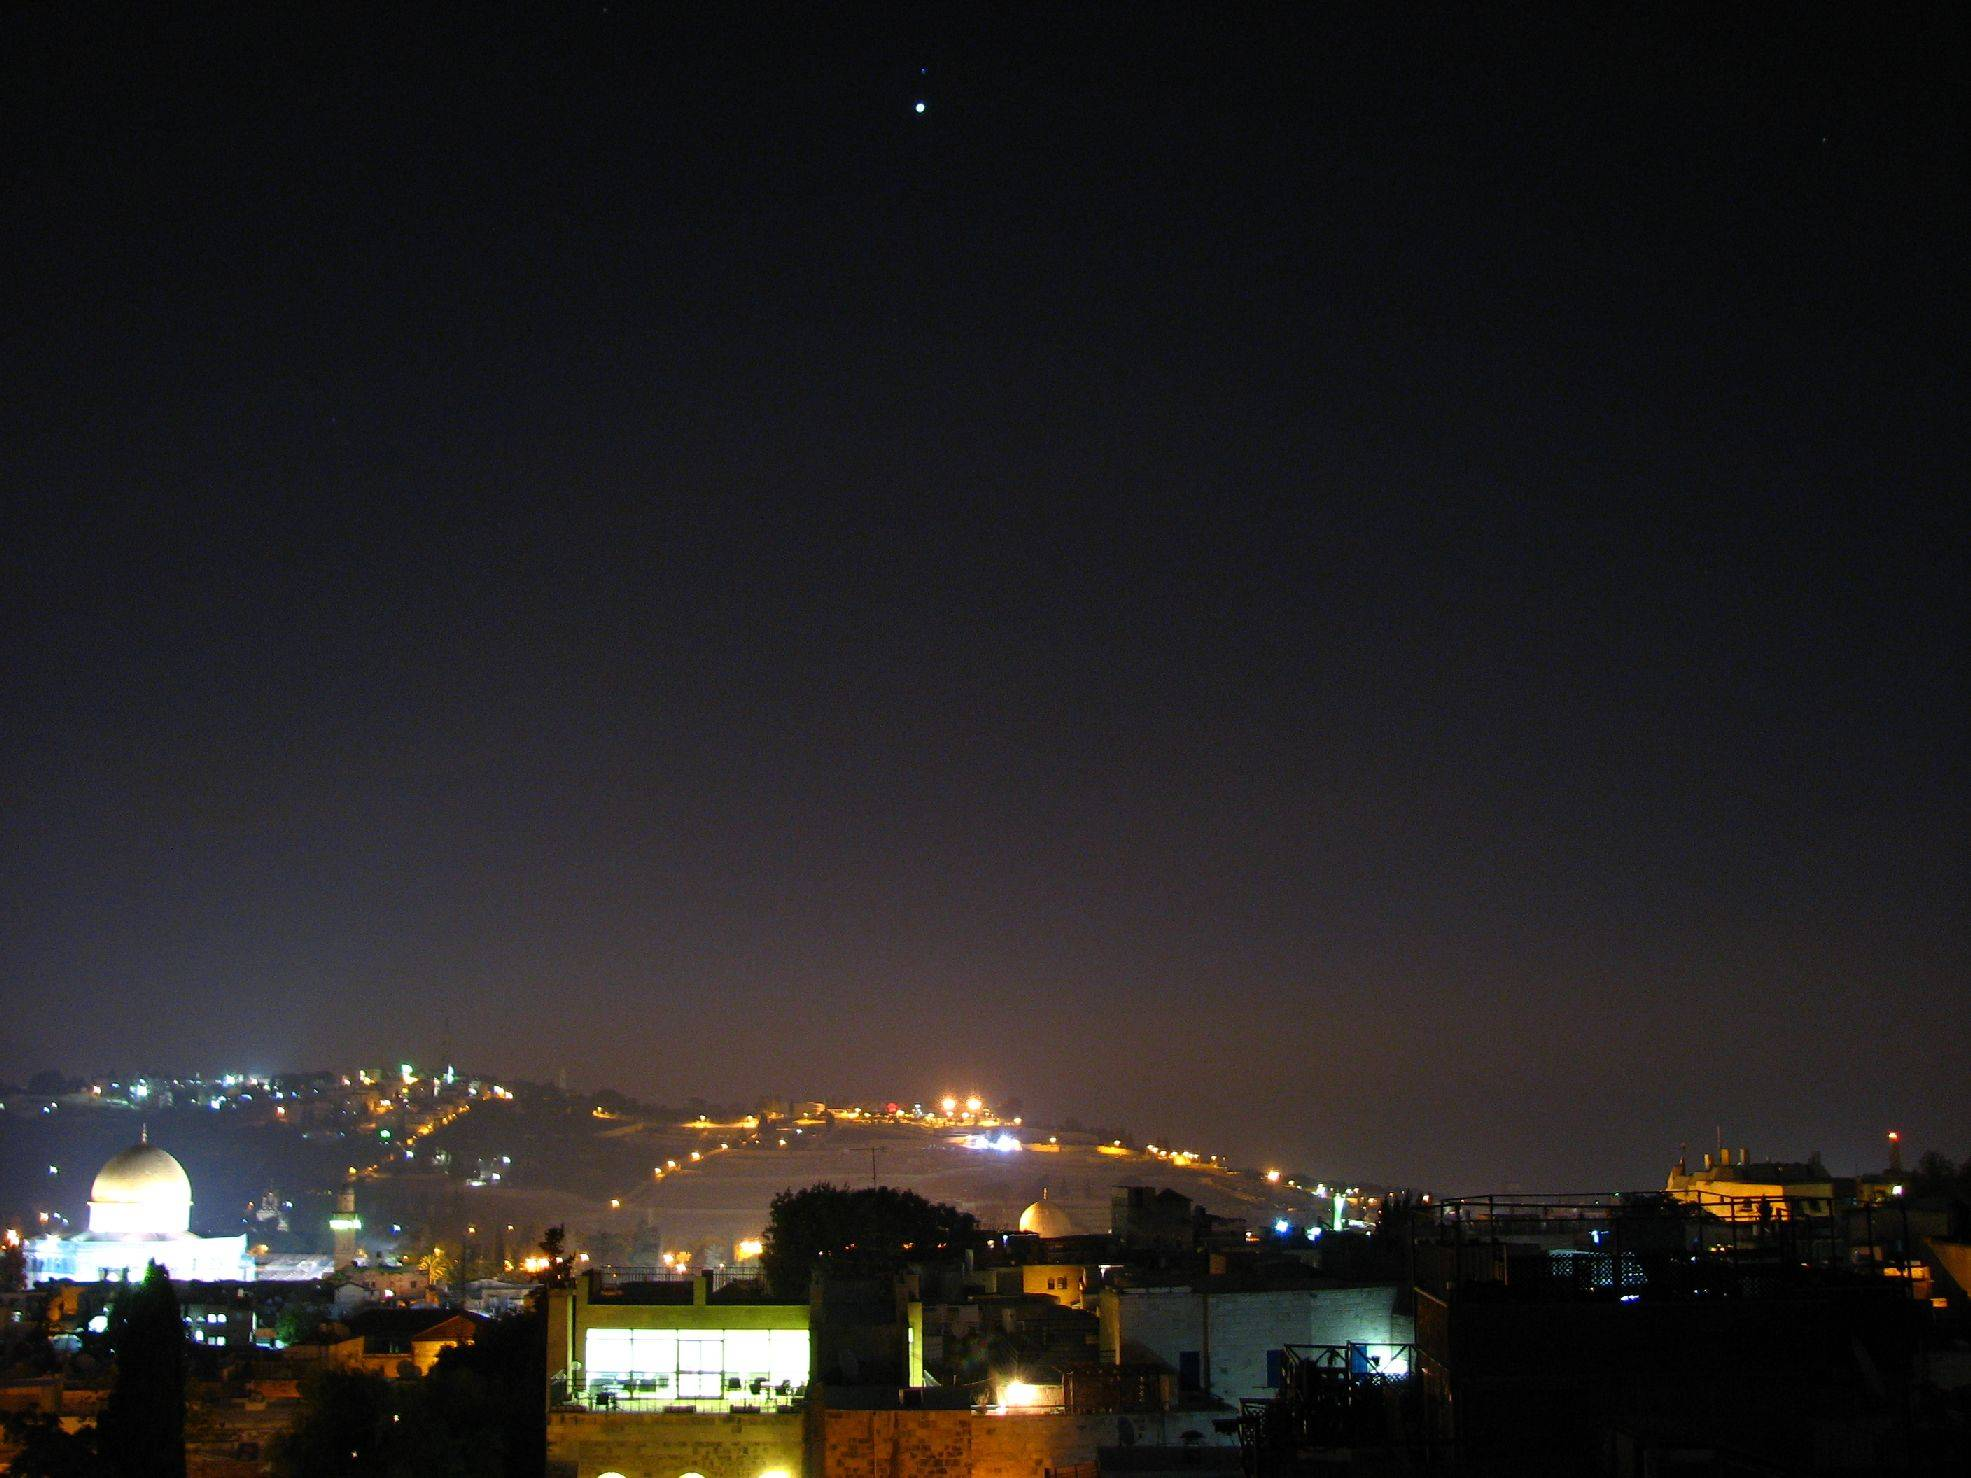 City at Night With Rare Star